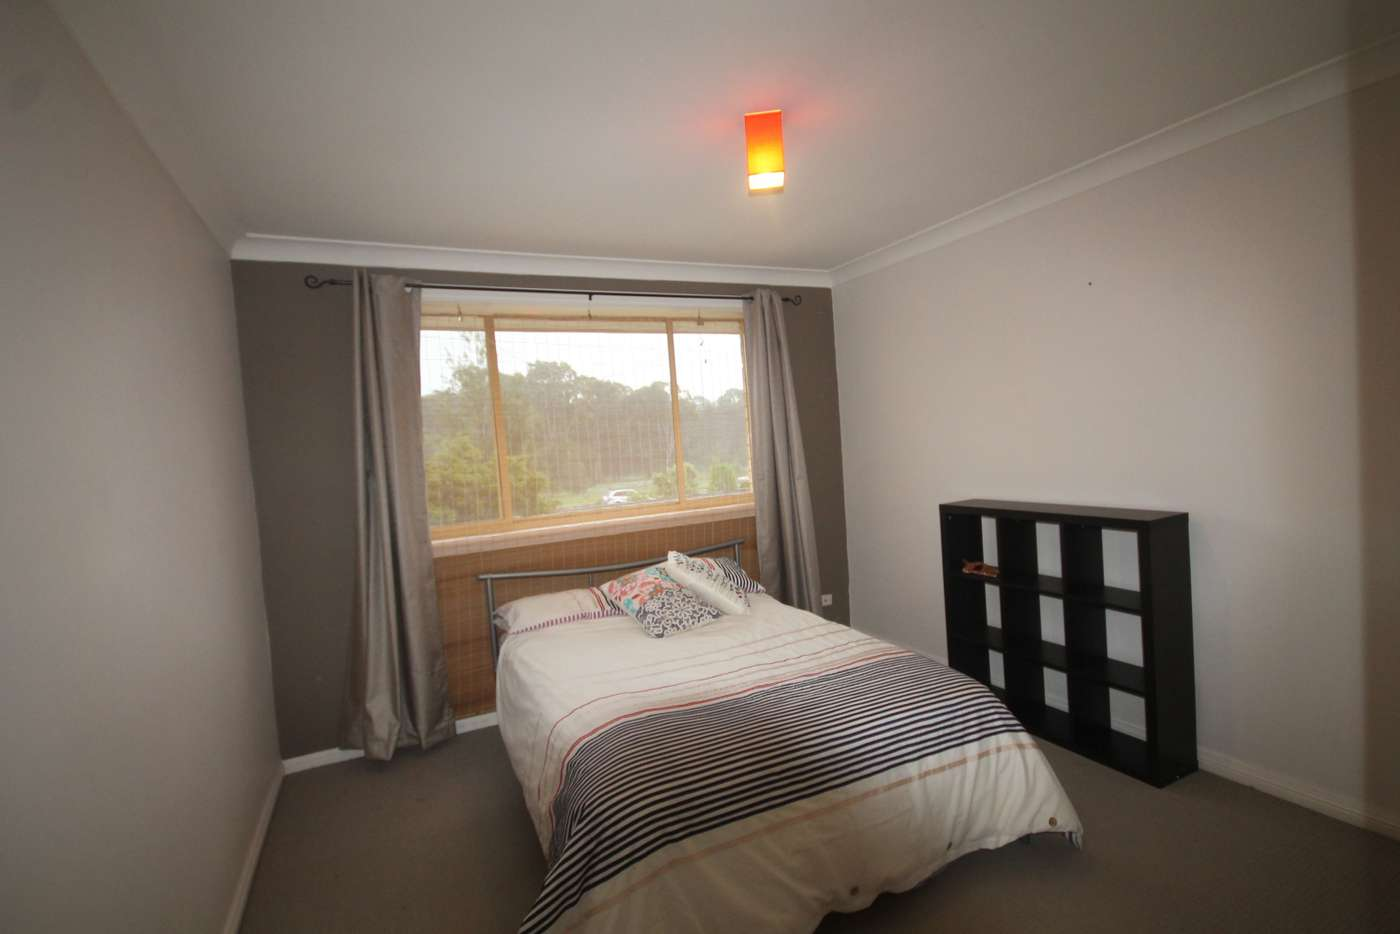 Sixth view of Homely house listing, 32B Whitsunday Circuit, Green Valley NSW 2168